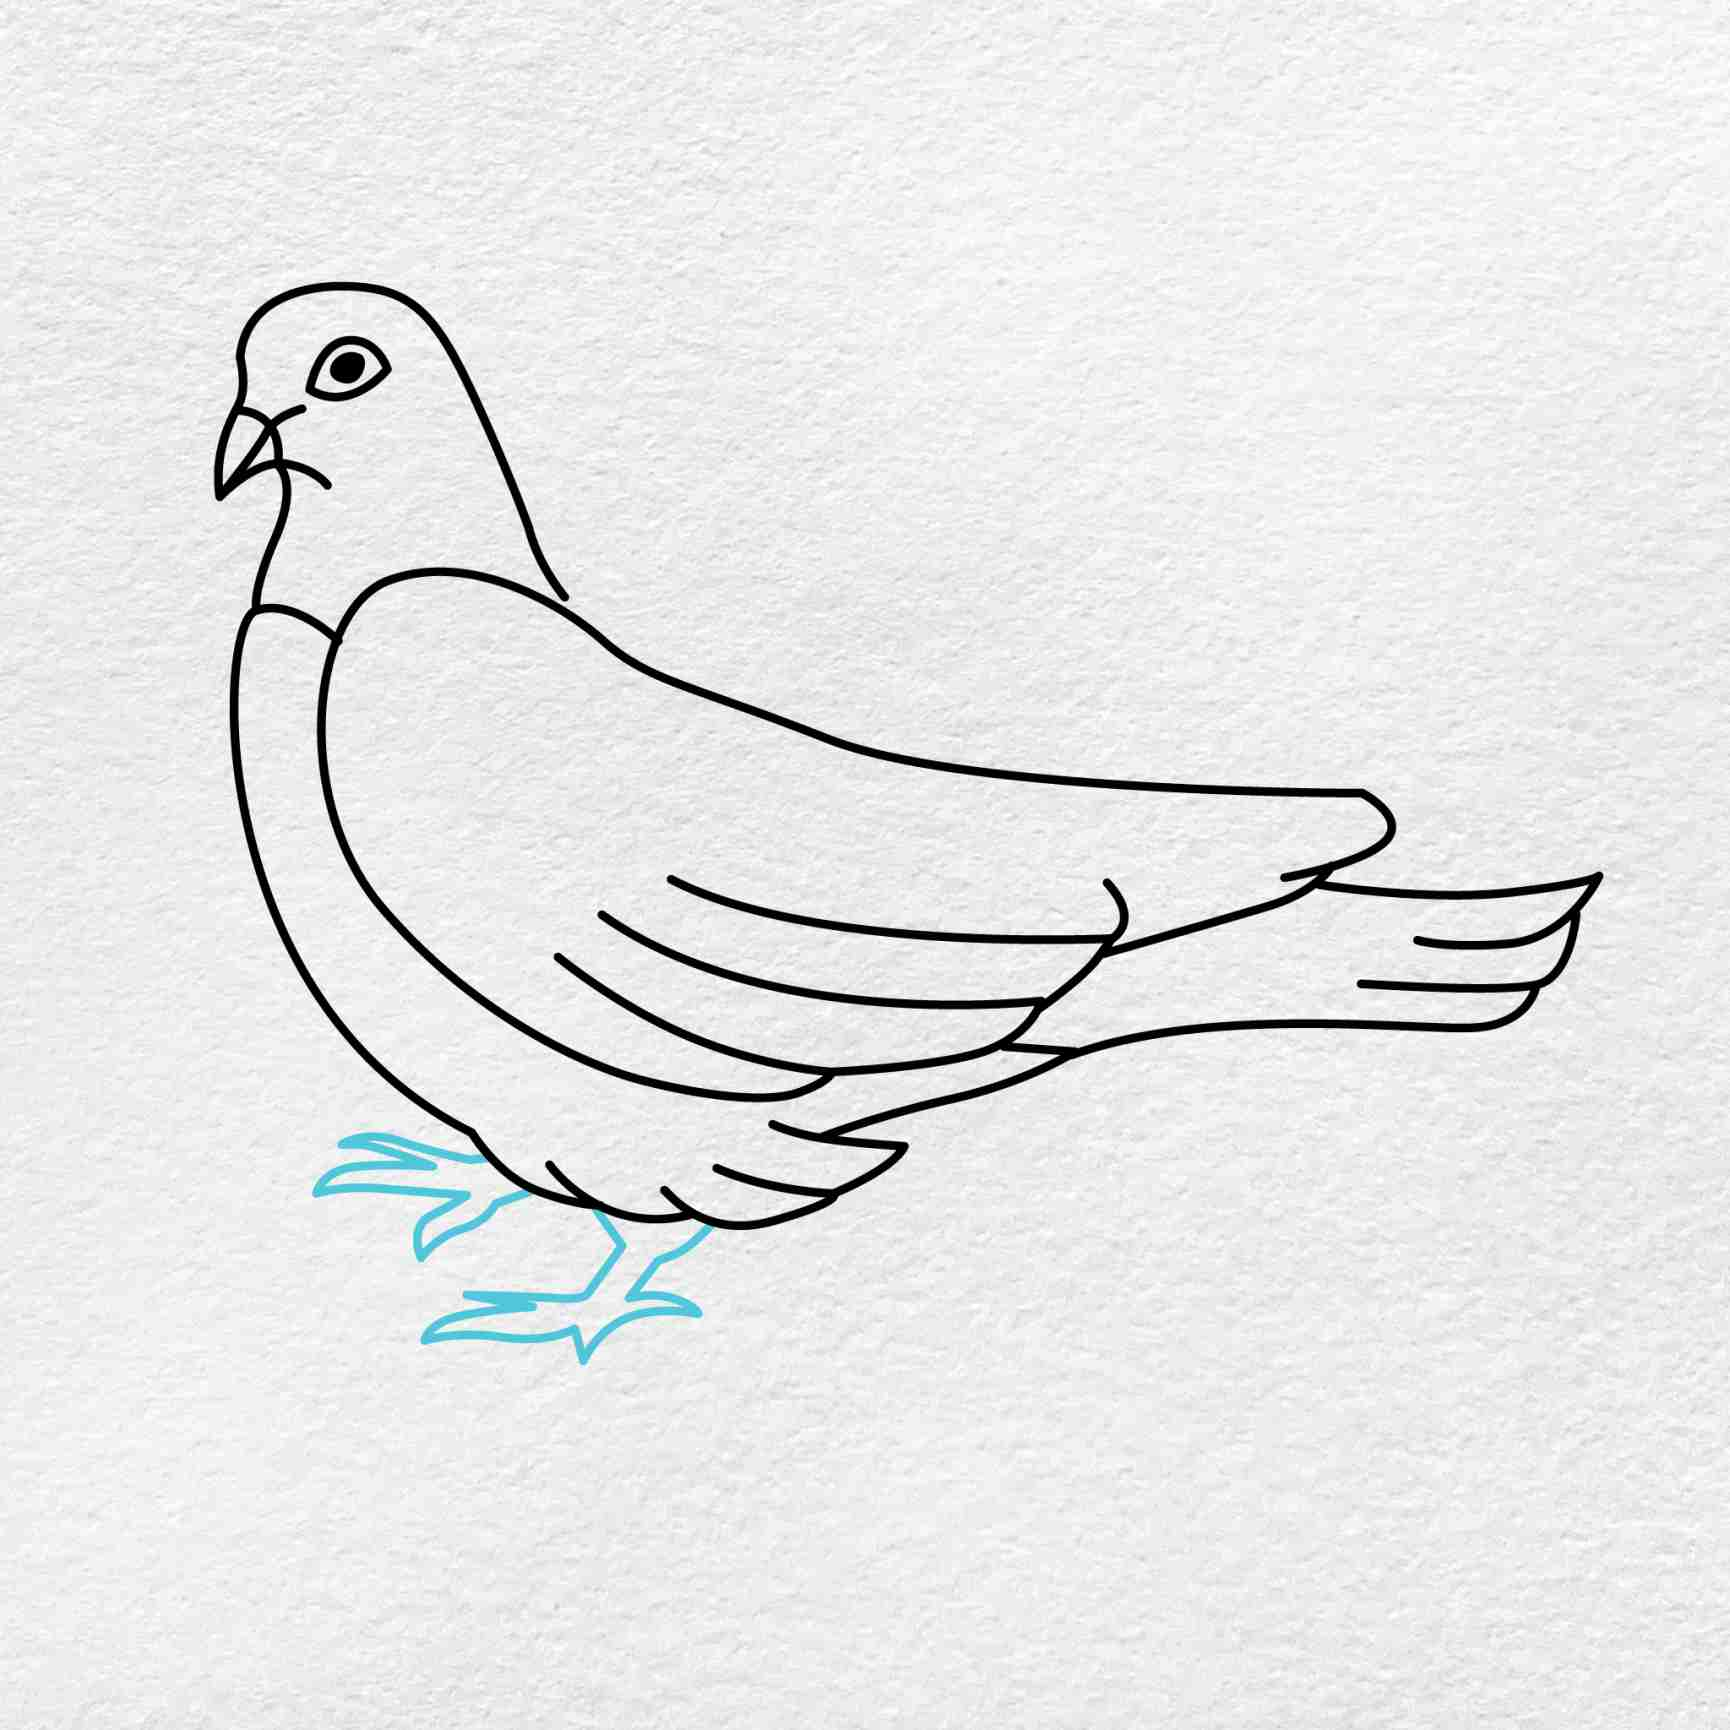 Dove Drawing: Step 5